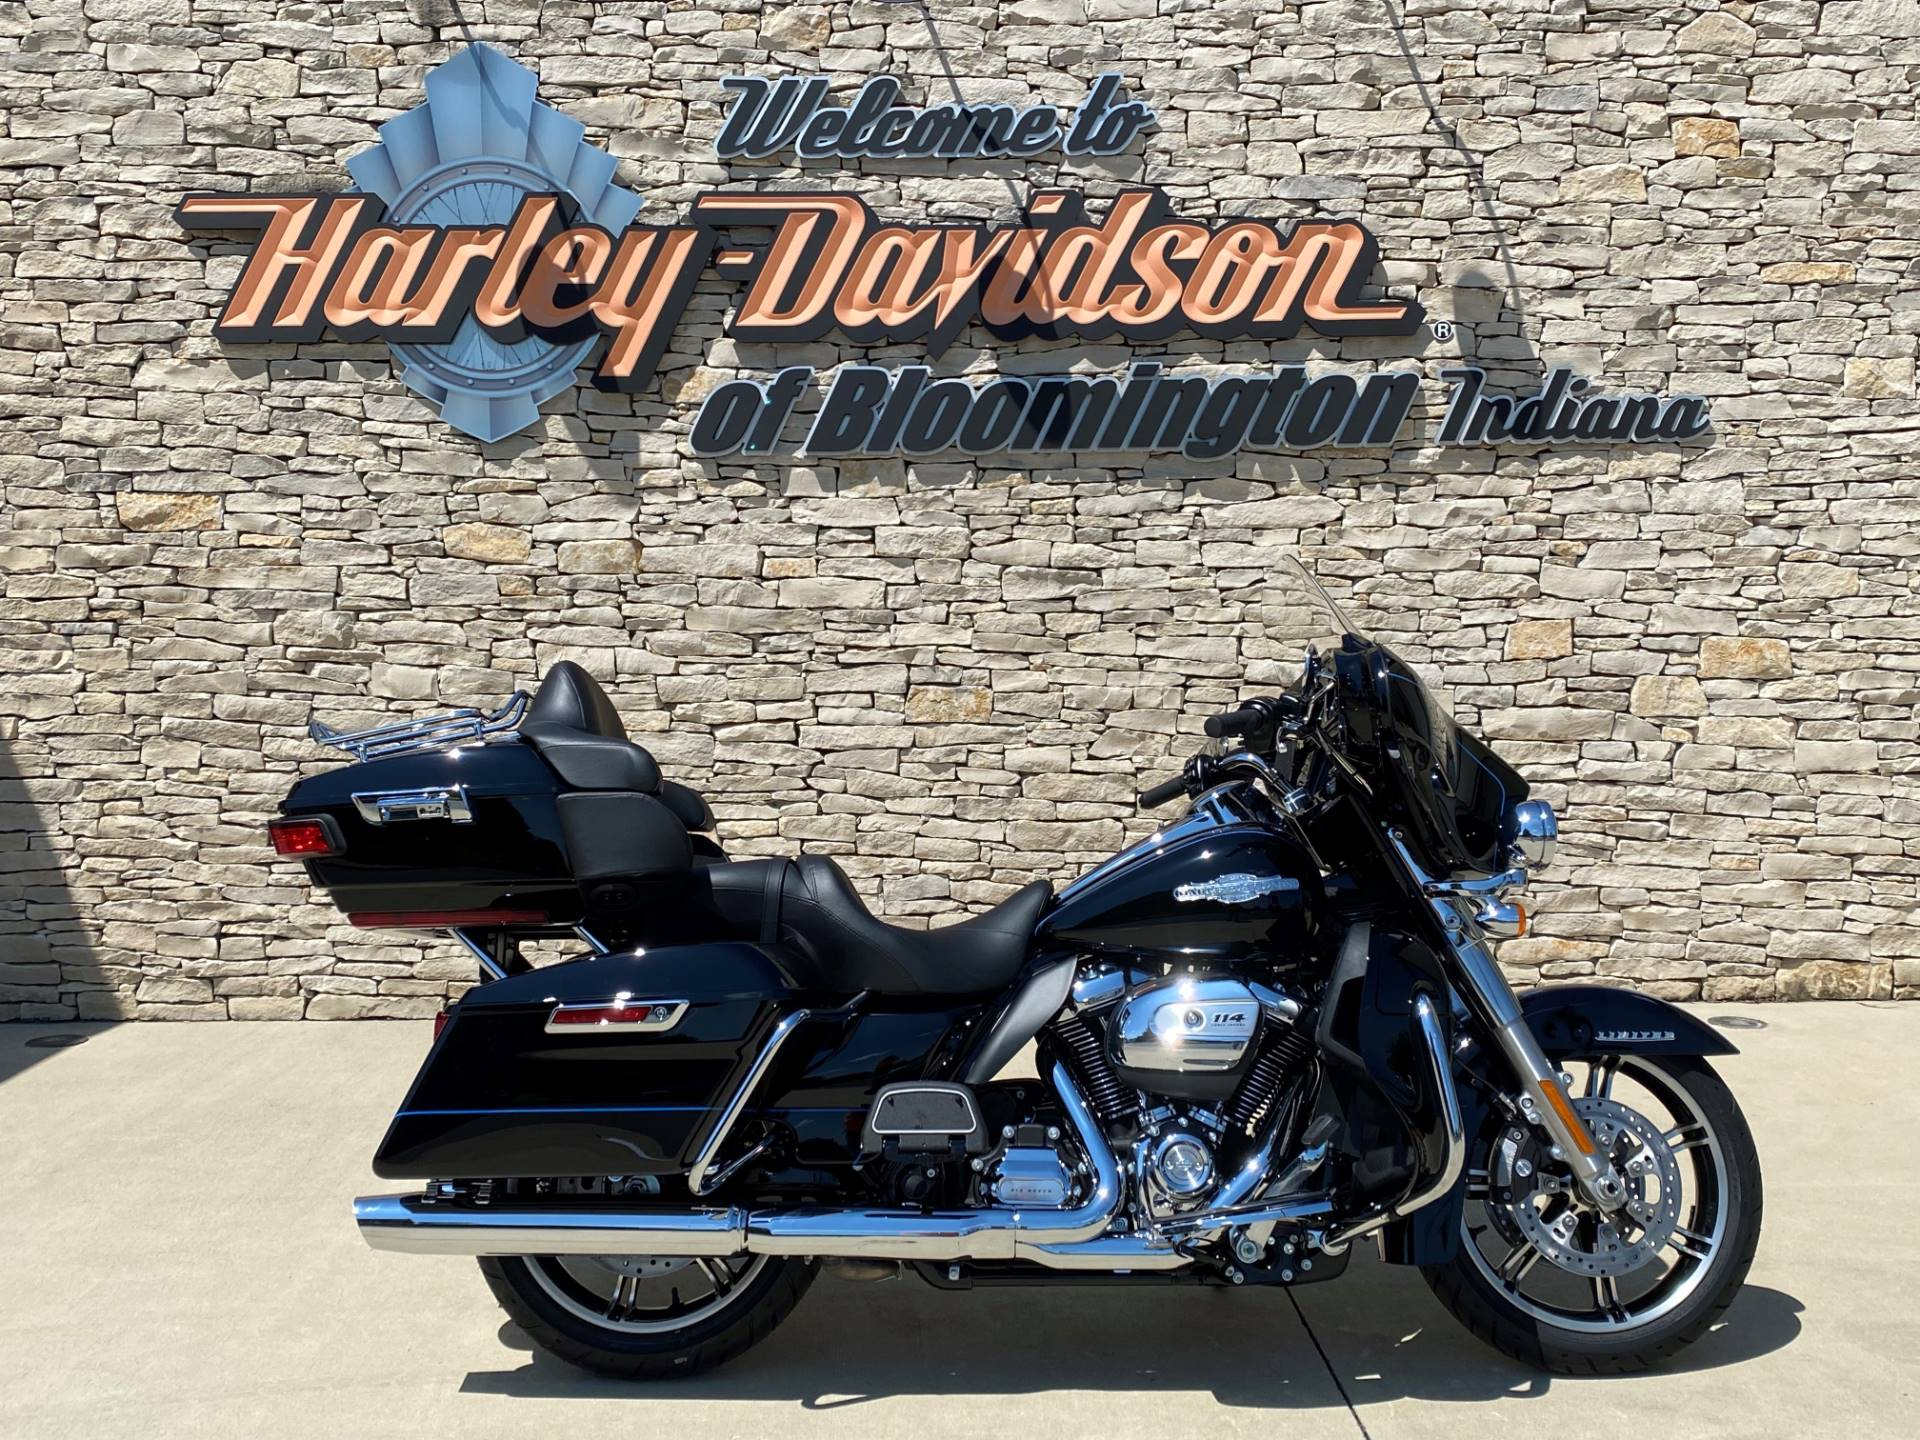 2020 Harley-Davidson Limited in Bloomington, Indiana - Photo 1